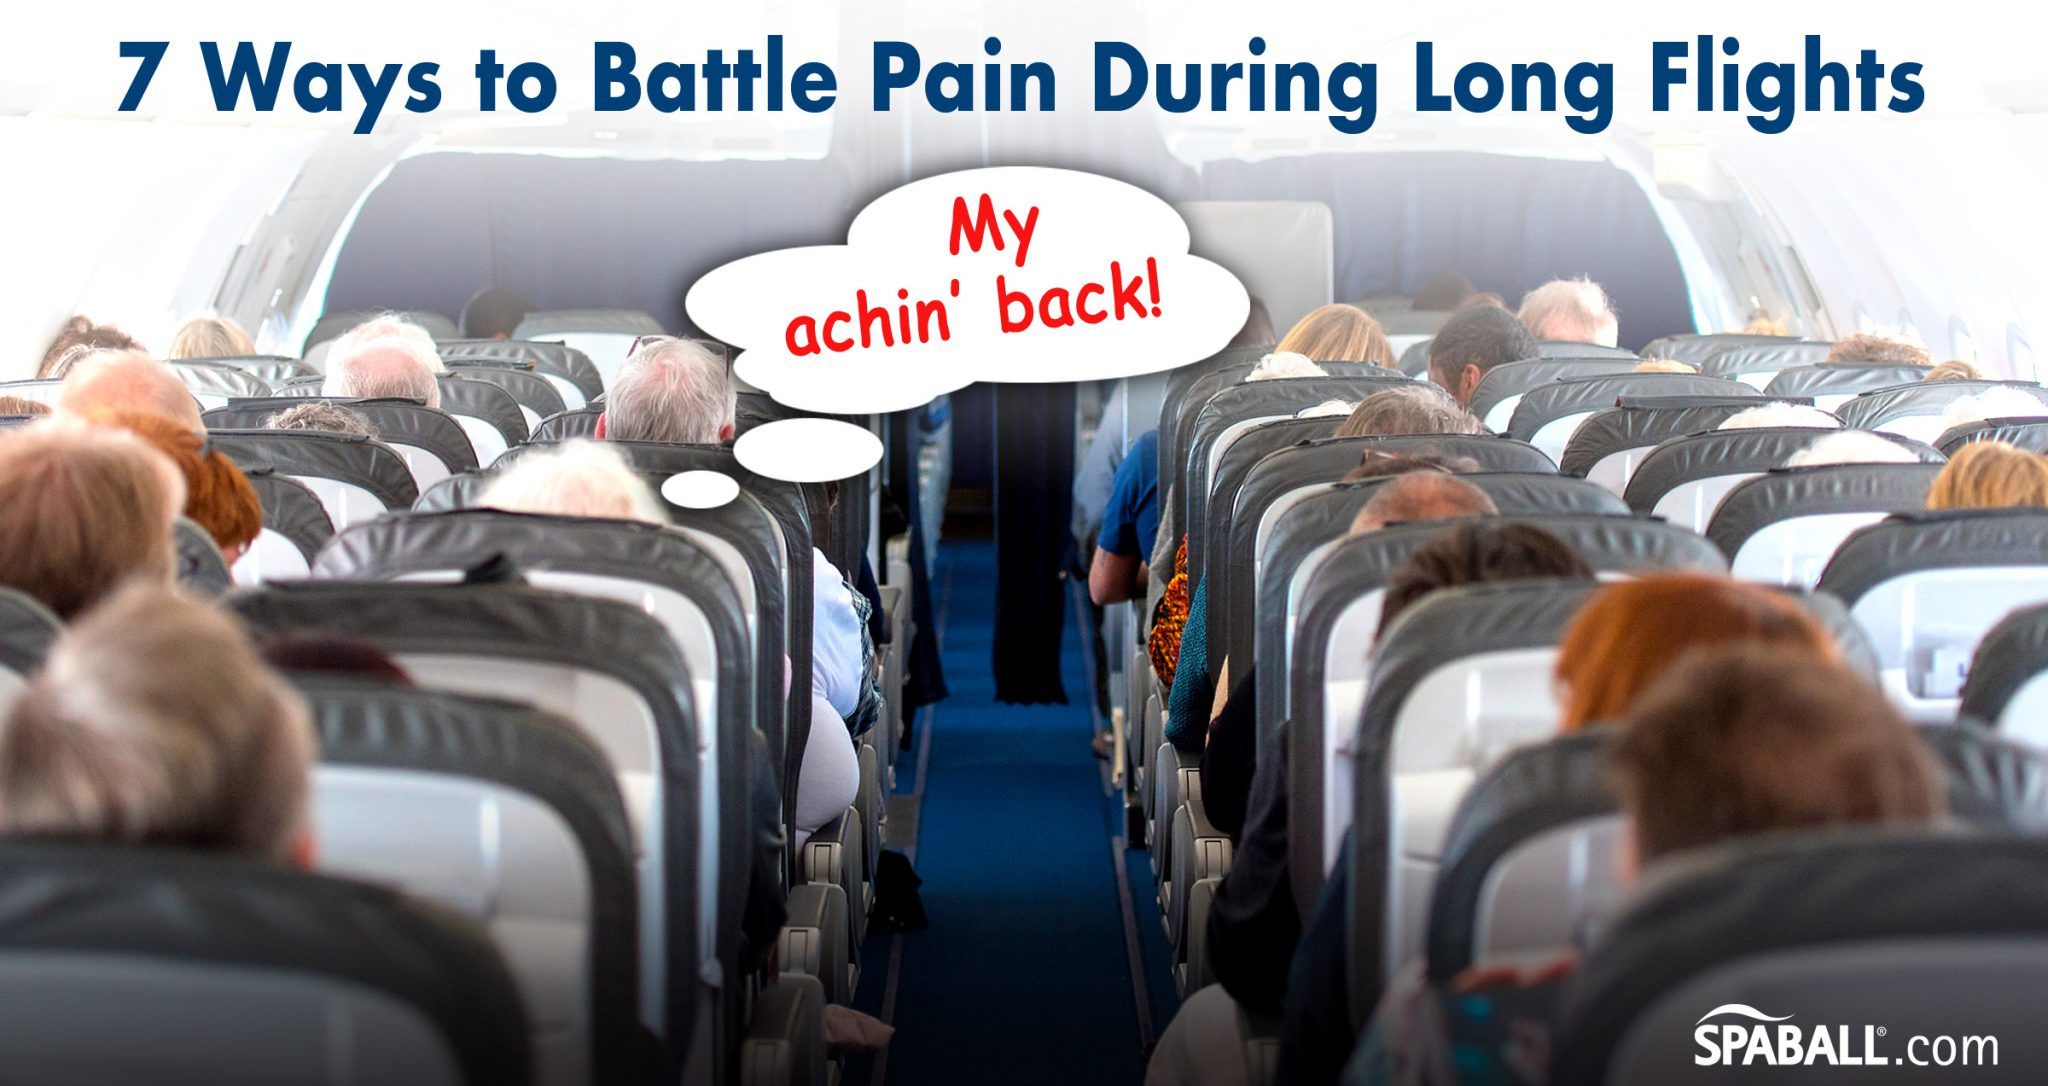 7 Ways to Battle Pain During Long Flights